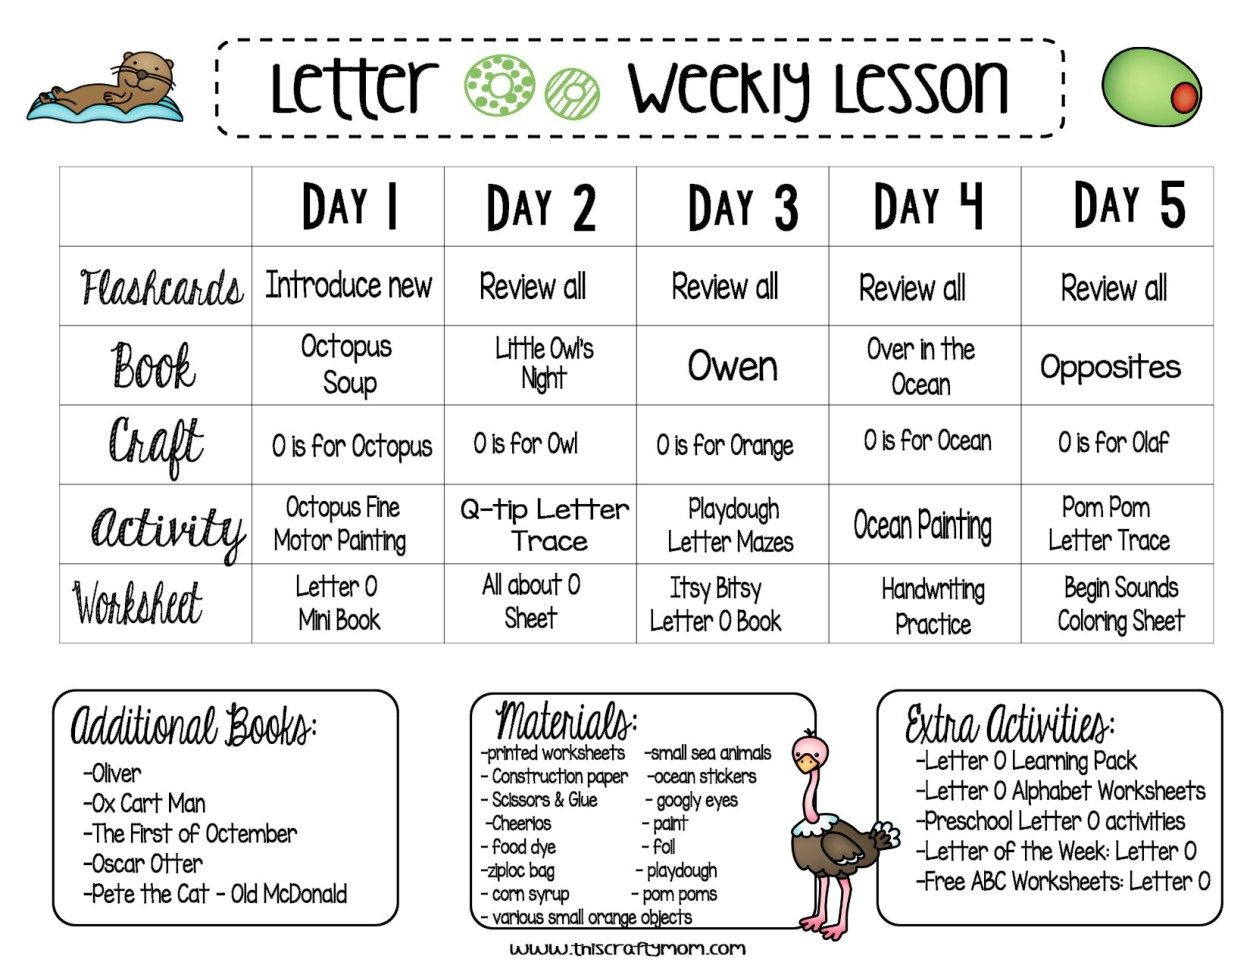 Letter O This Crafty Mom Preschool Weekly Lesson Plans Lesson Plans For Toddlers Curriculum Lesson Plans [ 965 x 1250 Pixel ]